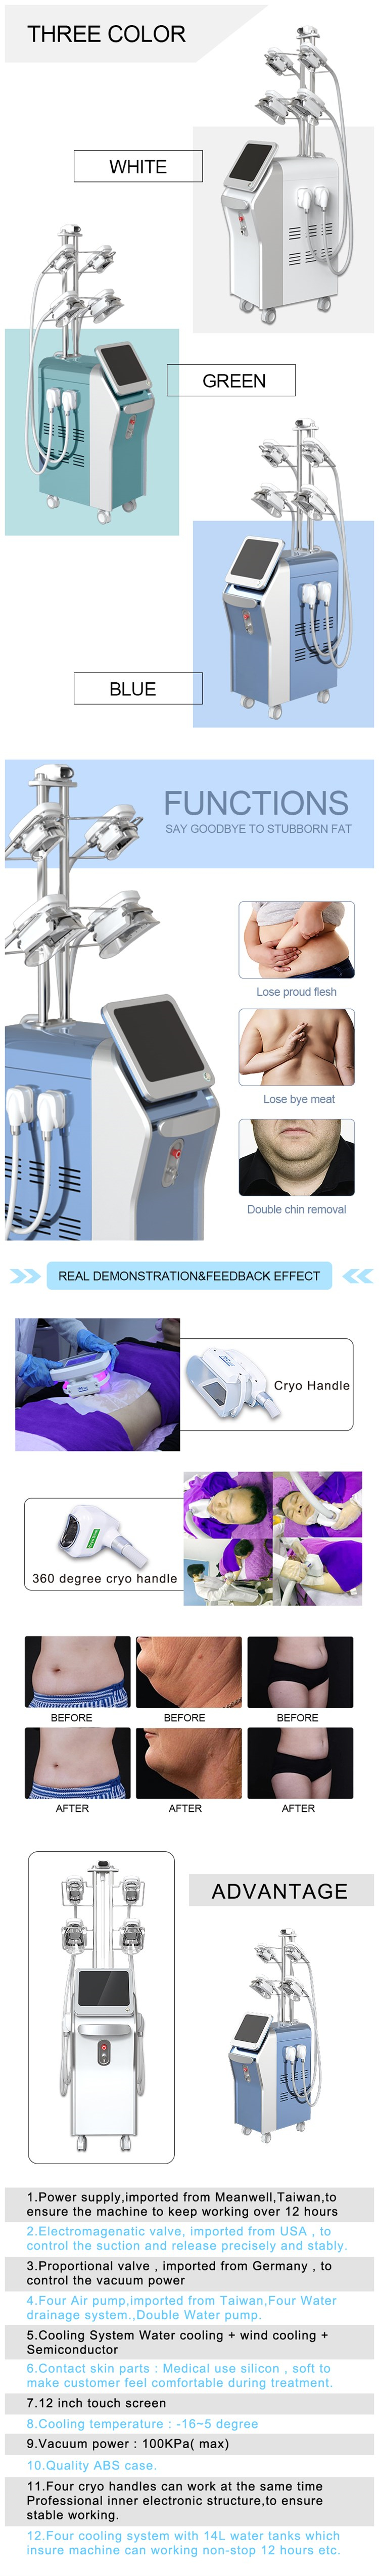 New beauty equipment 4 hands work at the same time fat freezing maquina criolipolisis